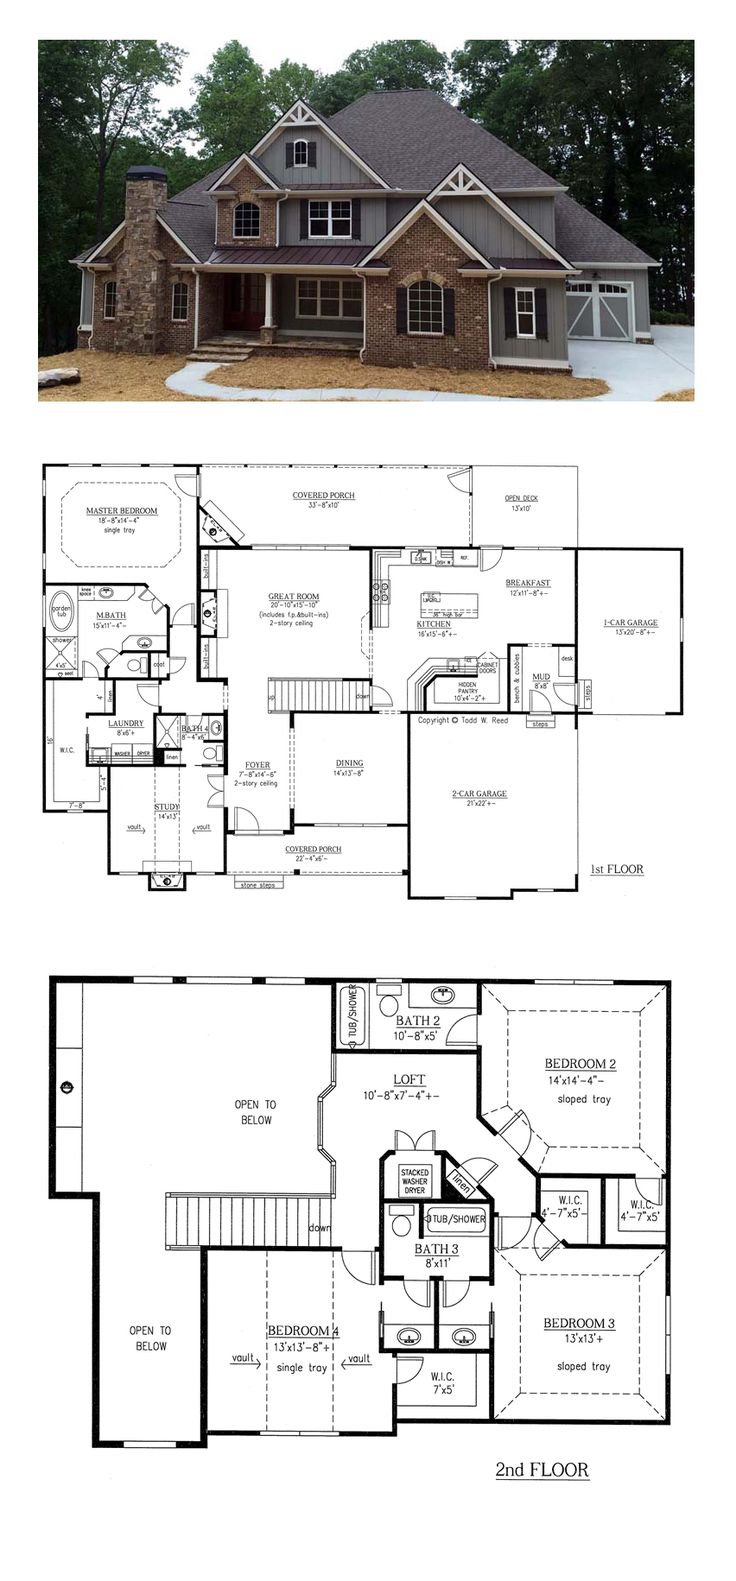 Incredible 17 Best Ideas About House Plans On Pinterest Country House Plans Largest Home Design Picture Inspirations Pitcheantrous